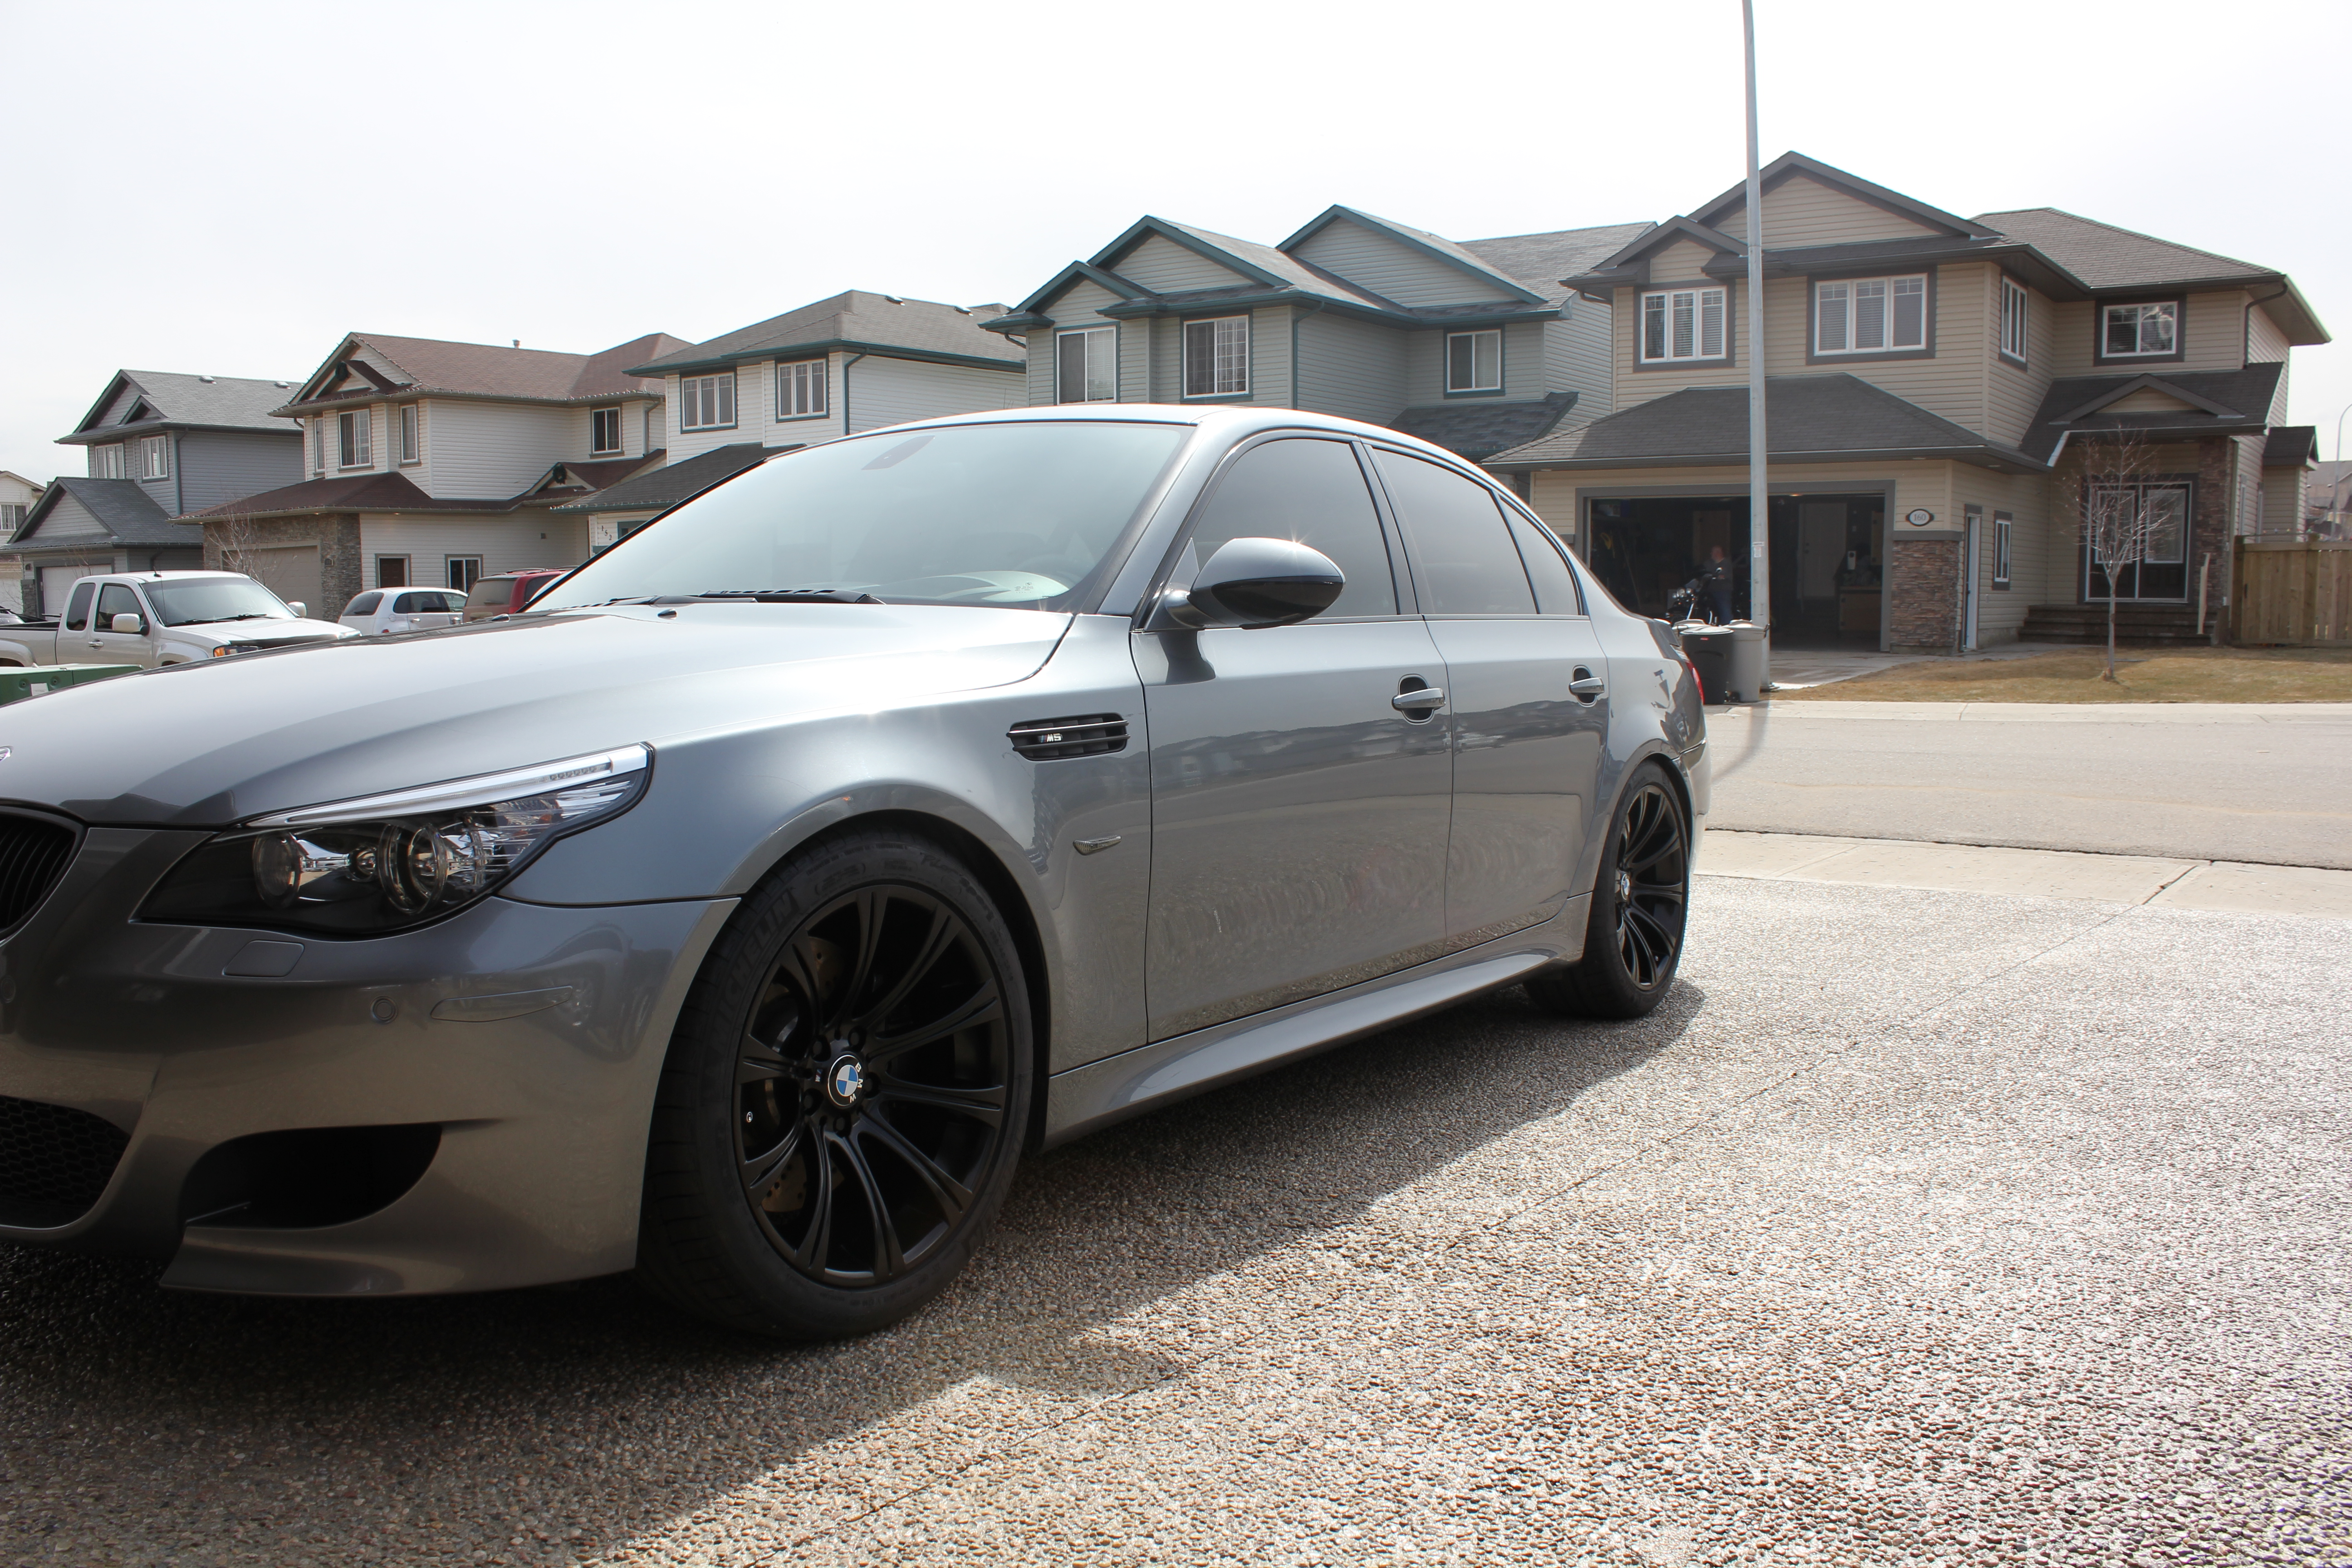 E60 0310 For Sale Feeler 2010 M5 Space Grey Canada  BMW M5